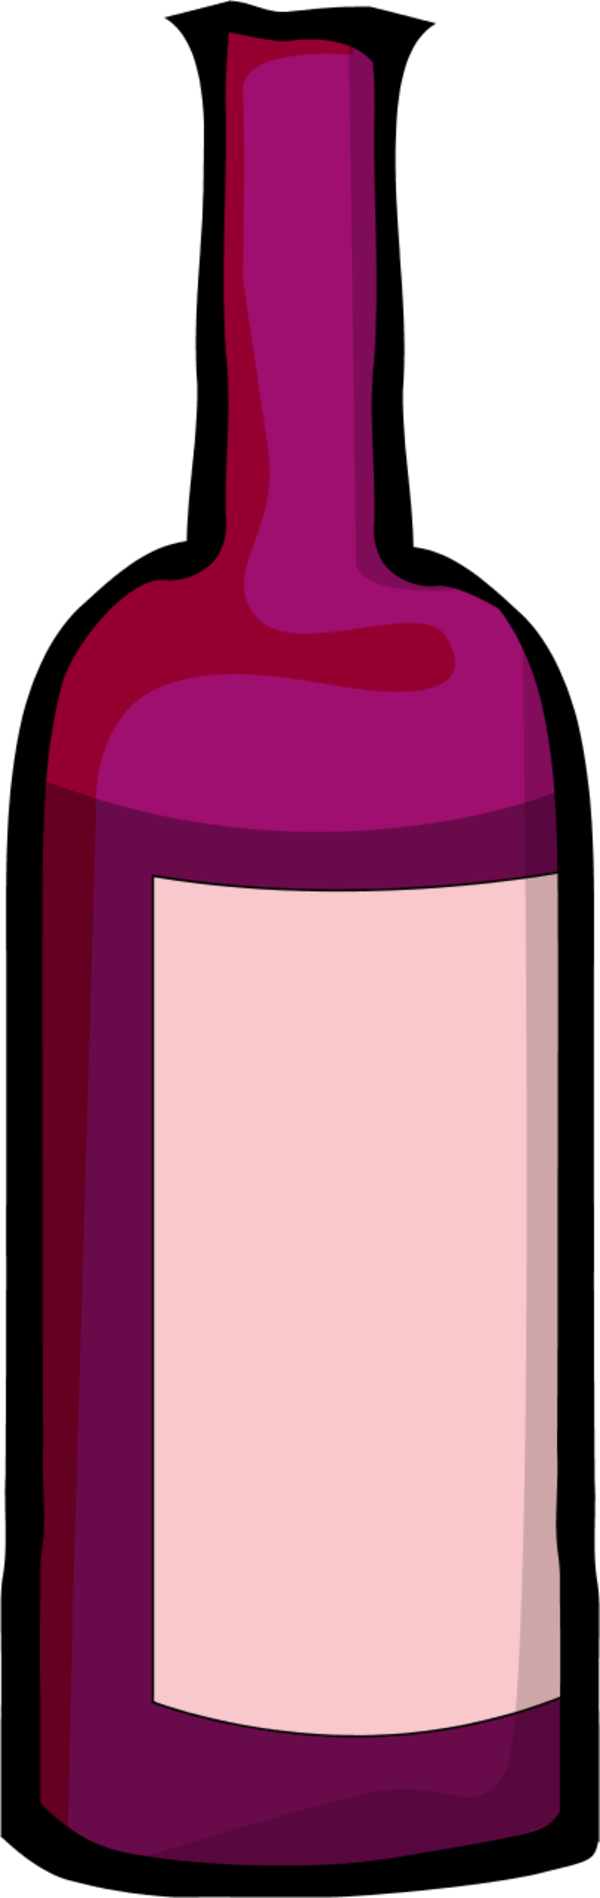 Clipart bottles of wine.